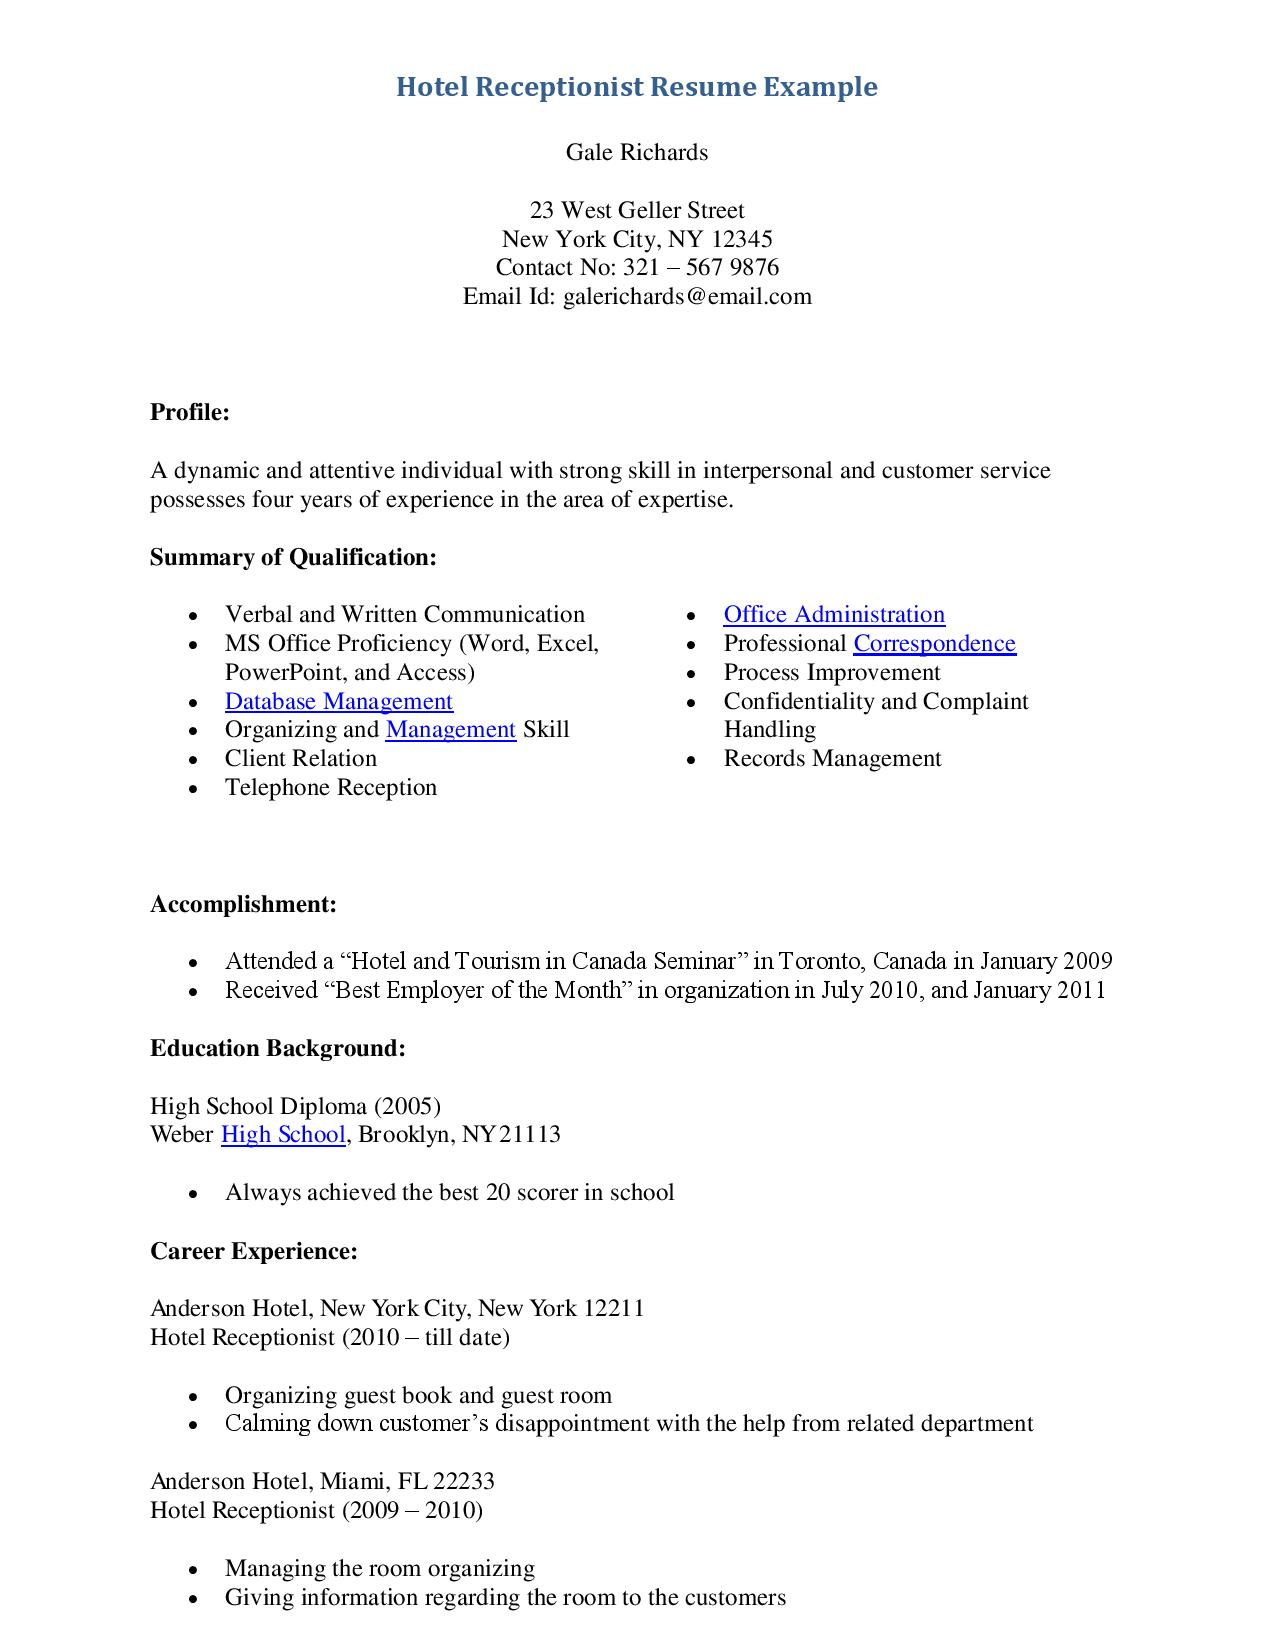 hotel receptionist resume samples - Sample Resume Format For Hotel Receptionist